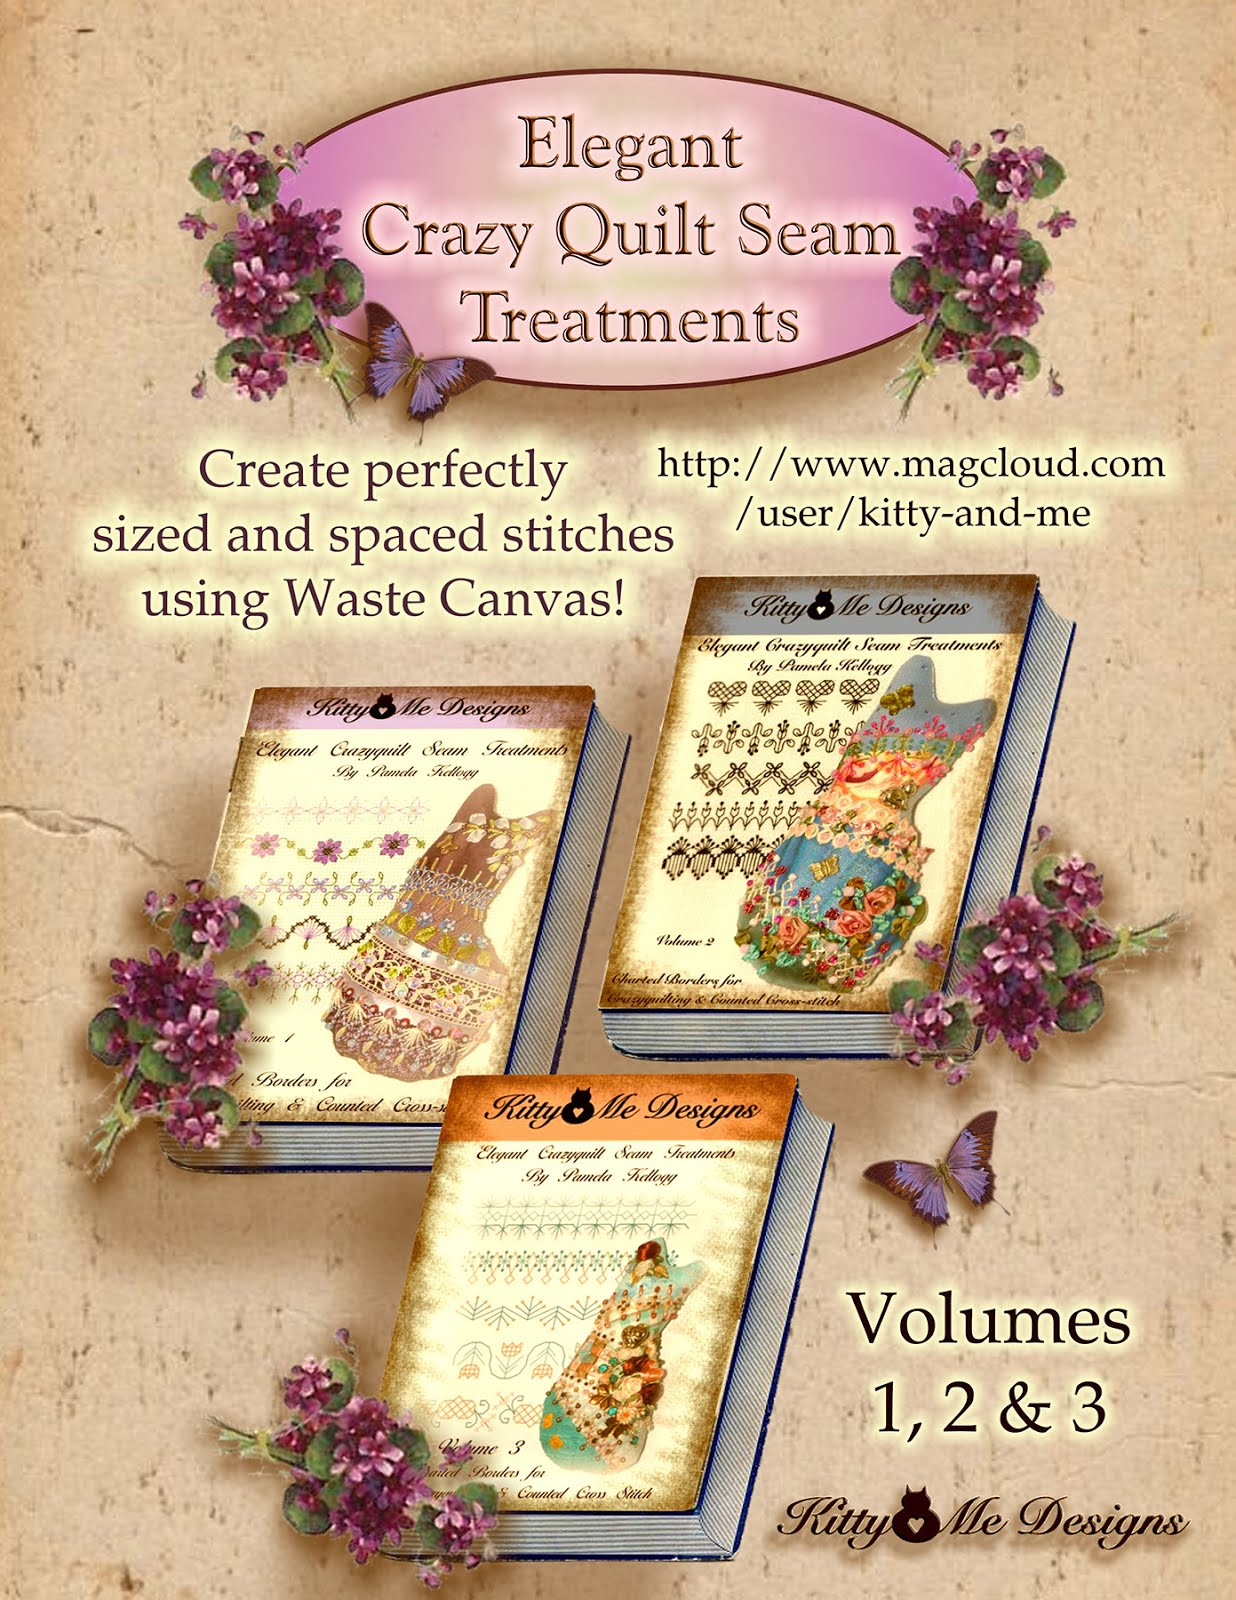 Elegant Crazy Quilt Seam Treatments